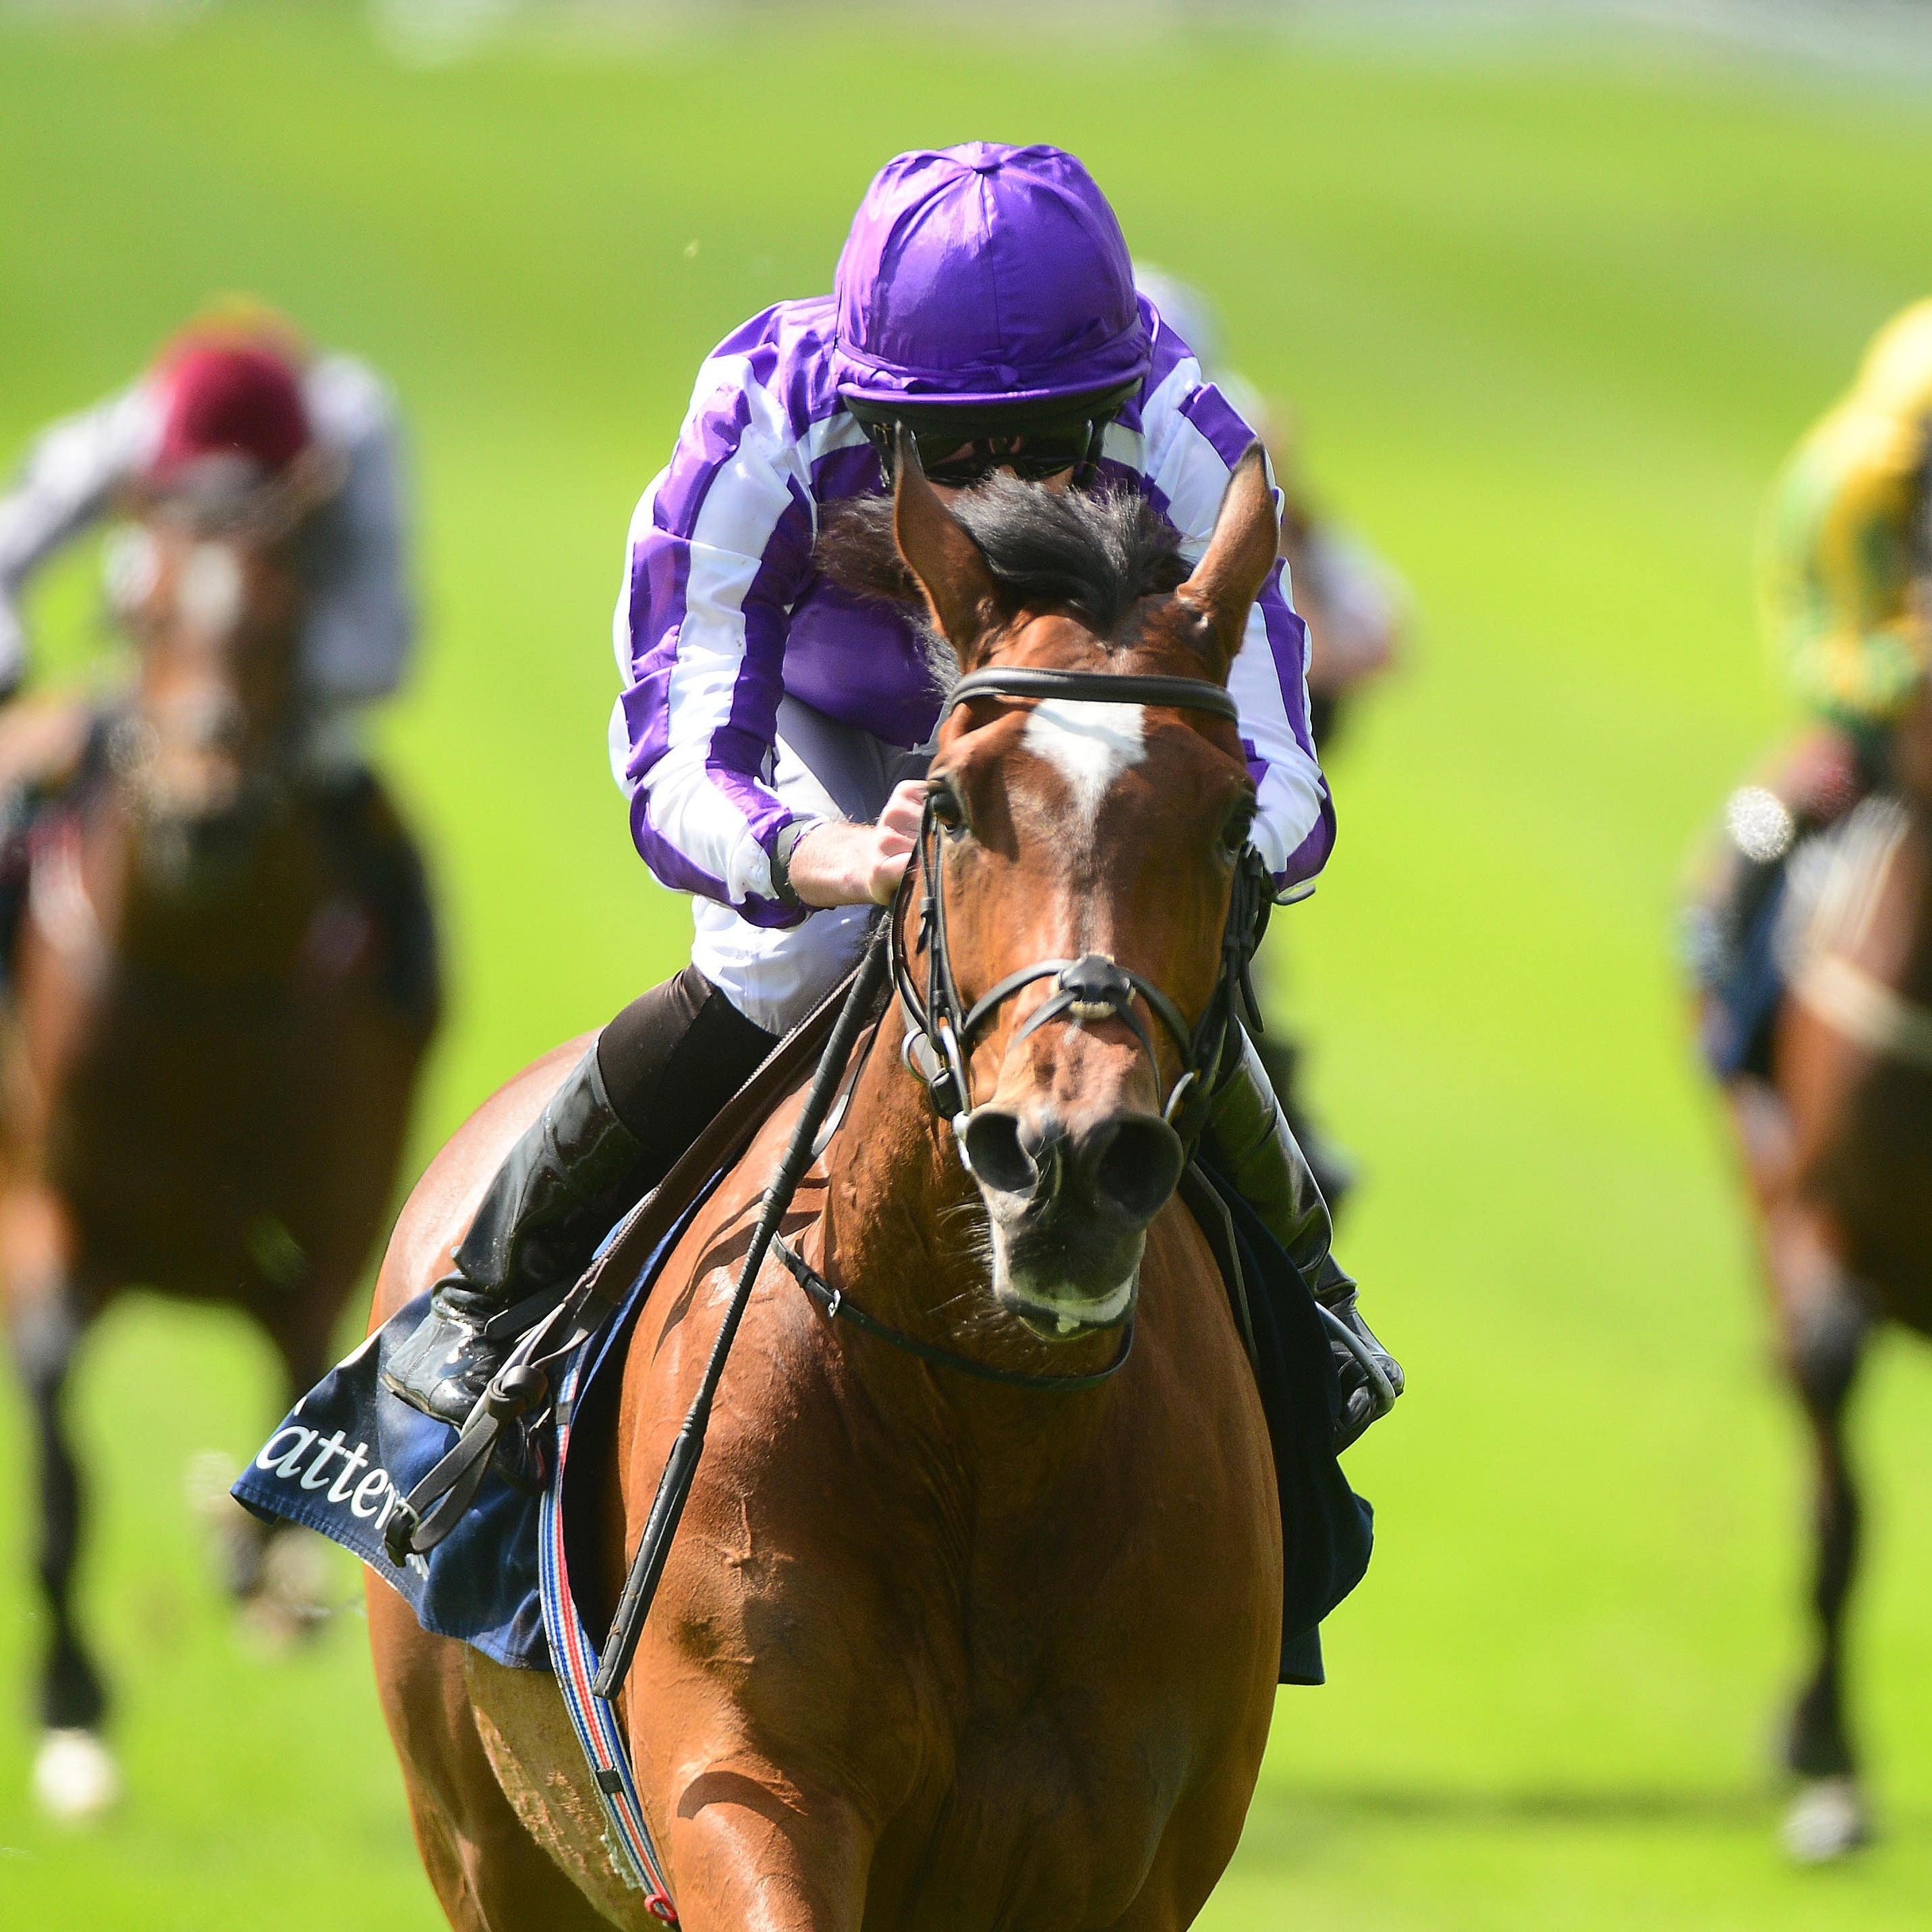 Magical wins the Tattersalls Gold Cup at the Curragh